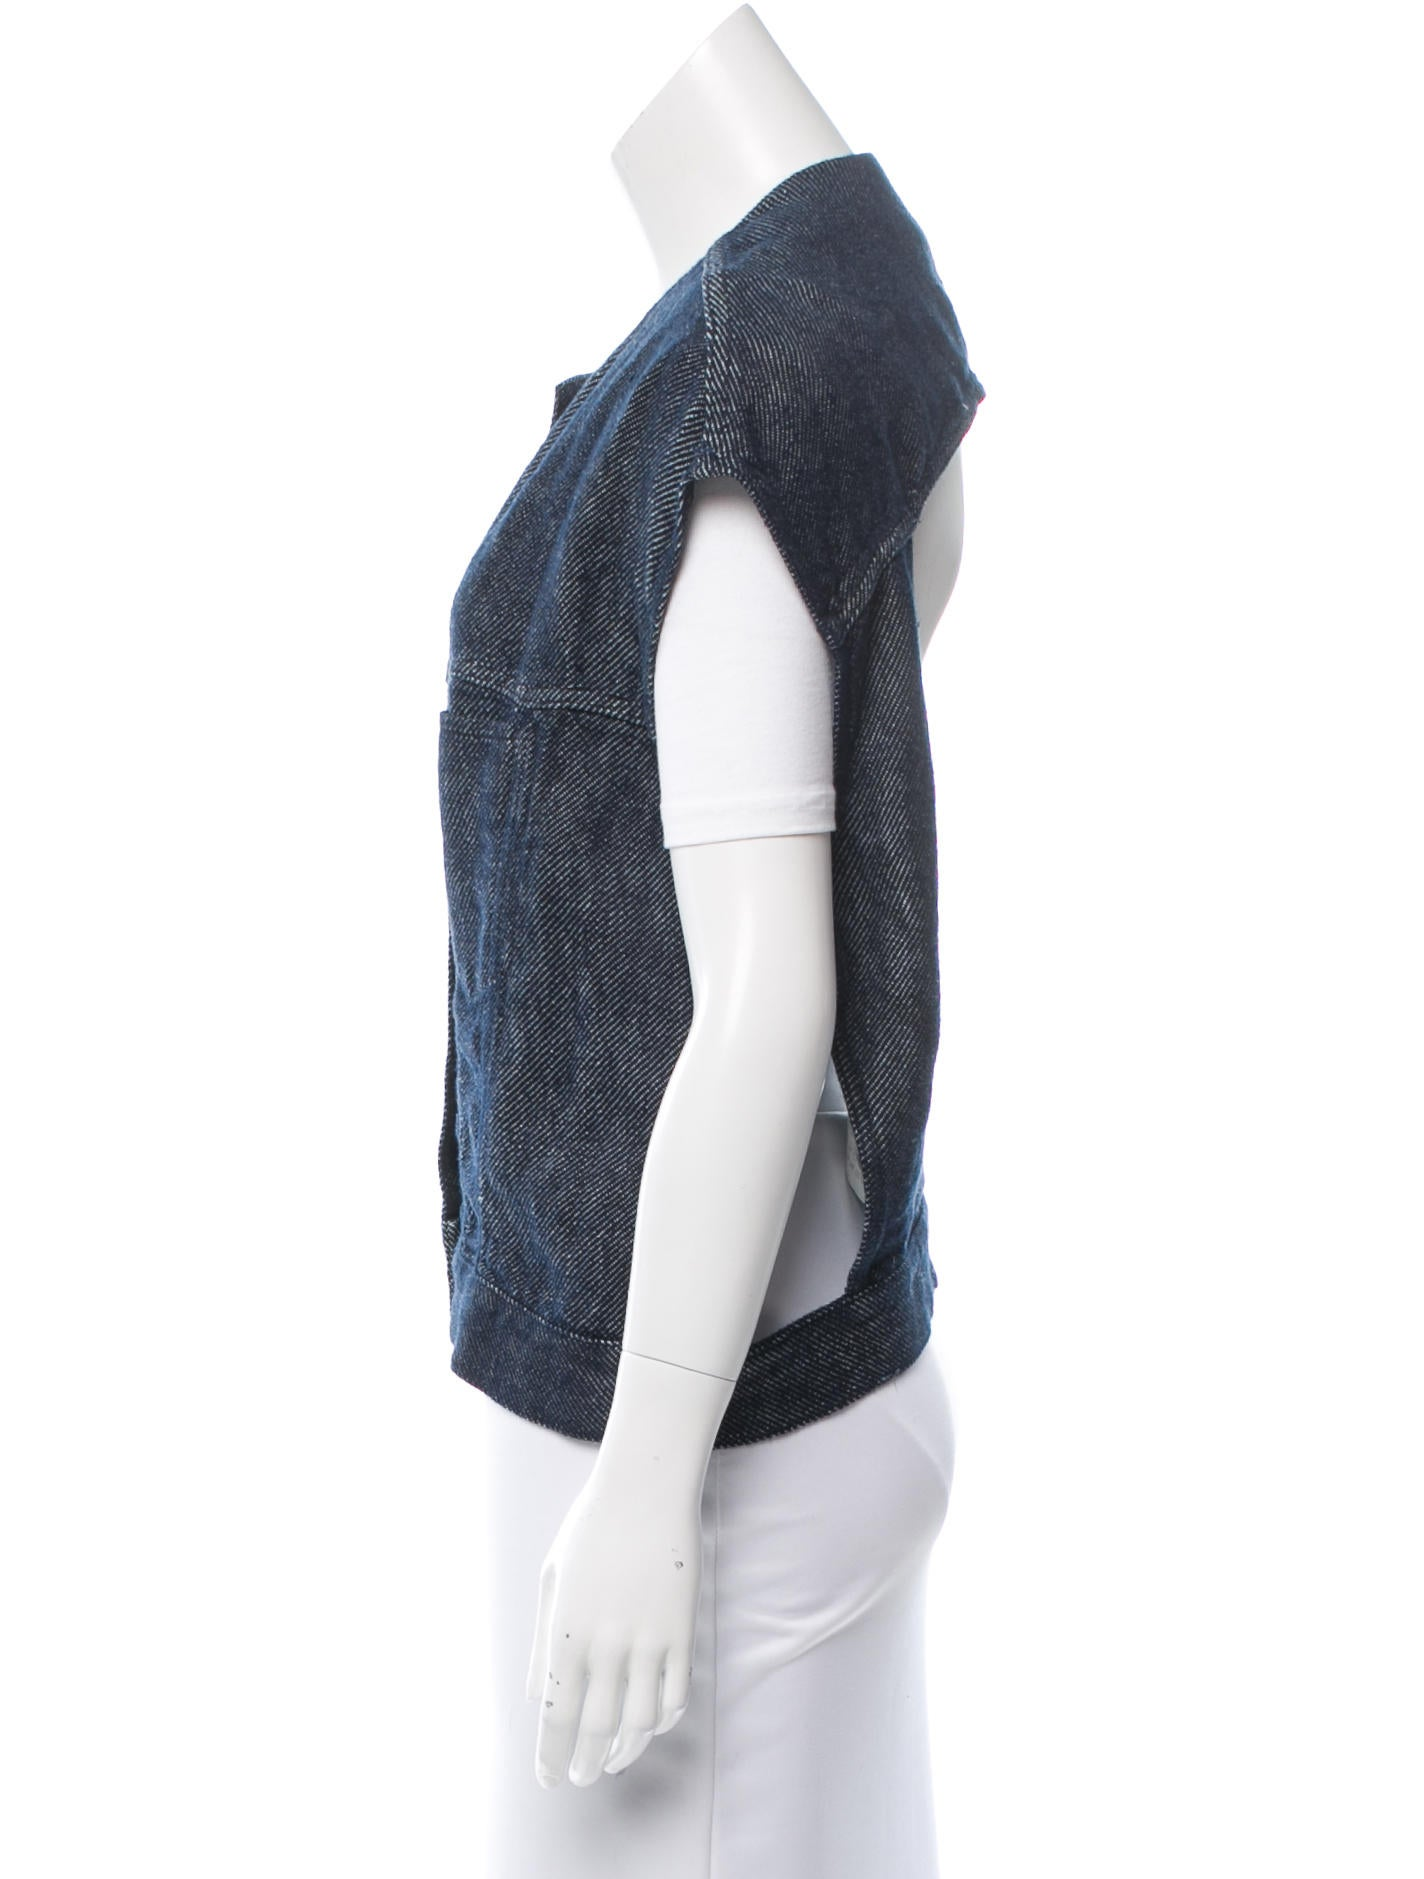 Acne Linen Open Back Vest - Clothing - ACN27882 | The RealReal